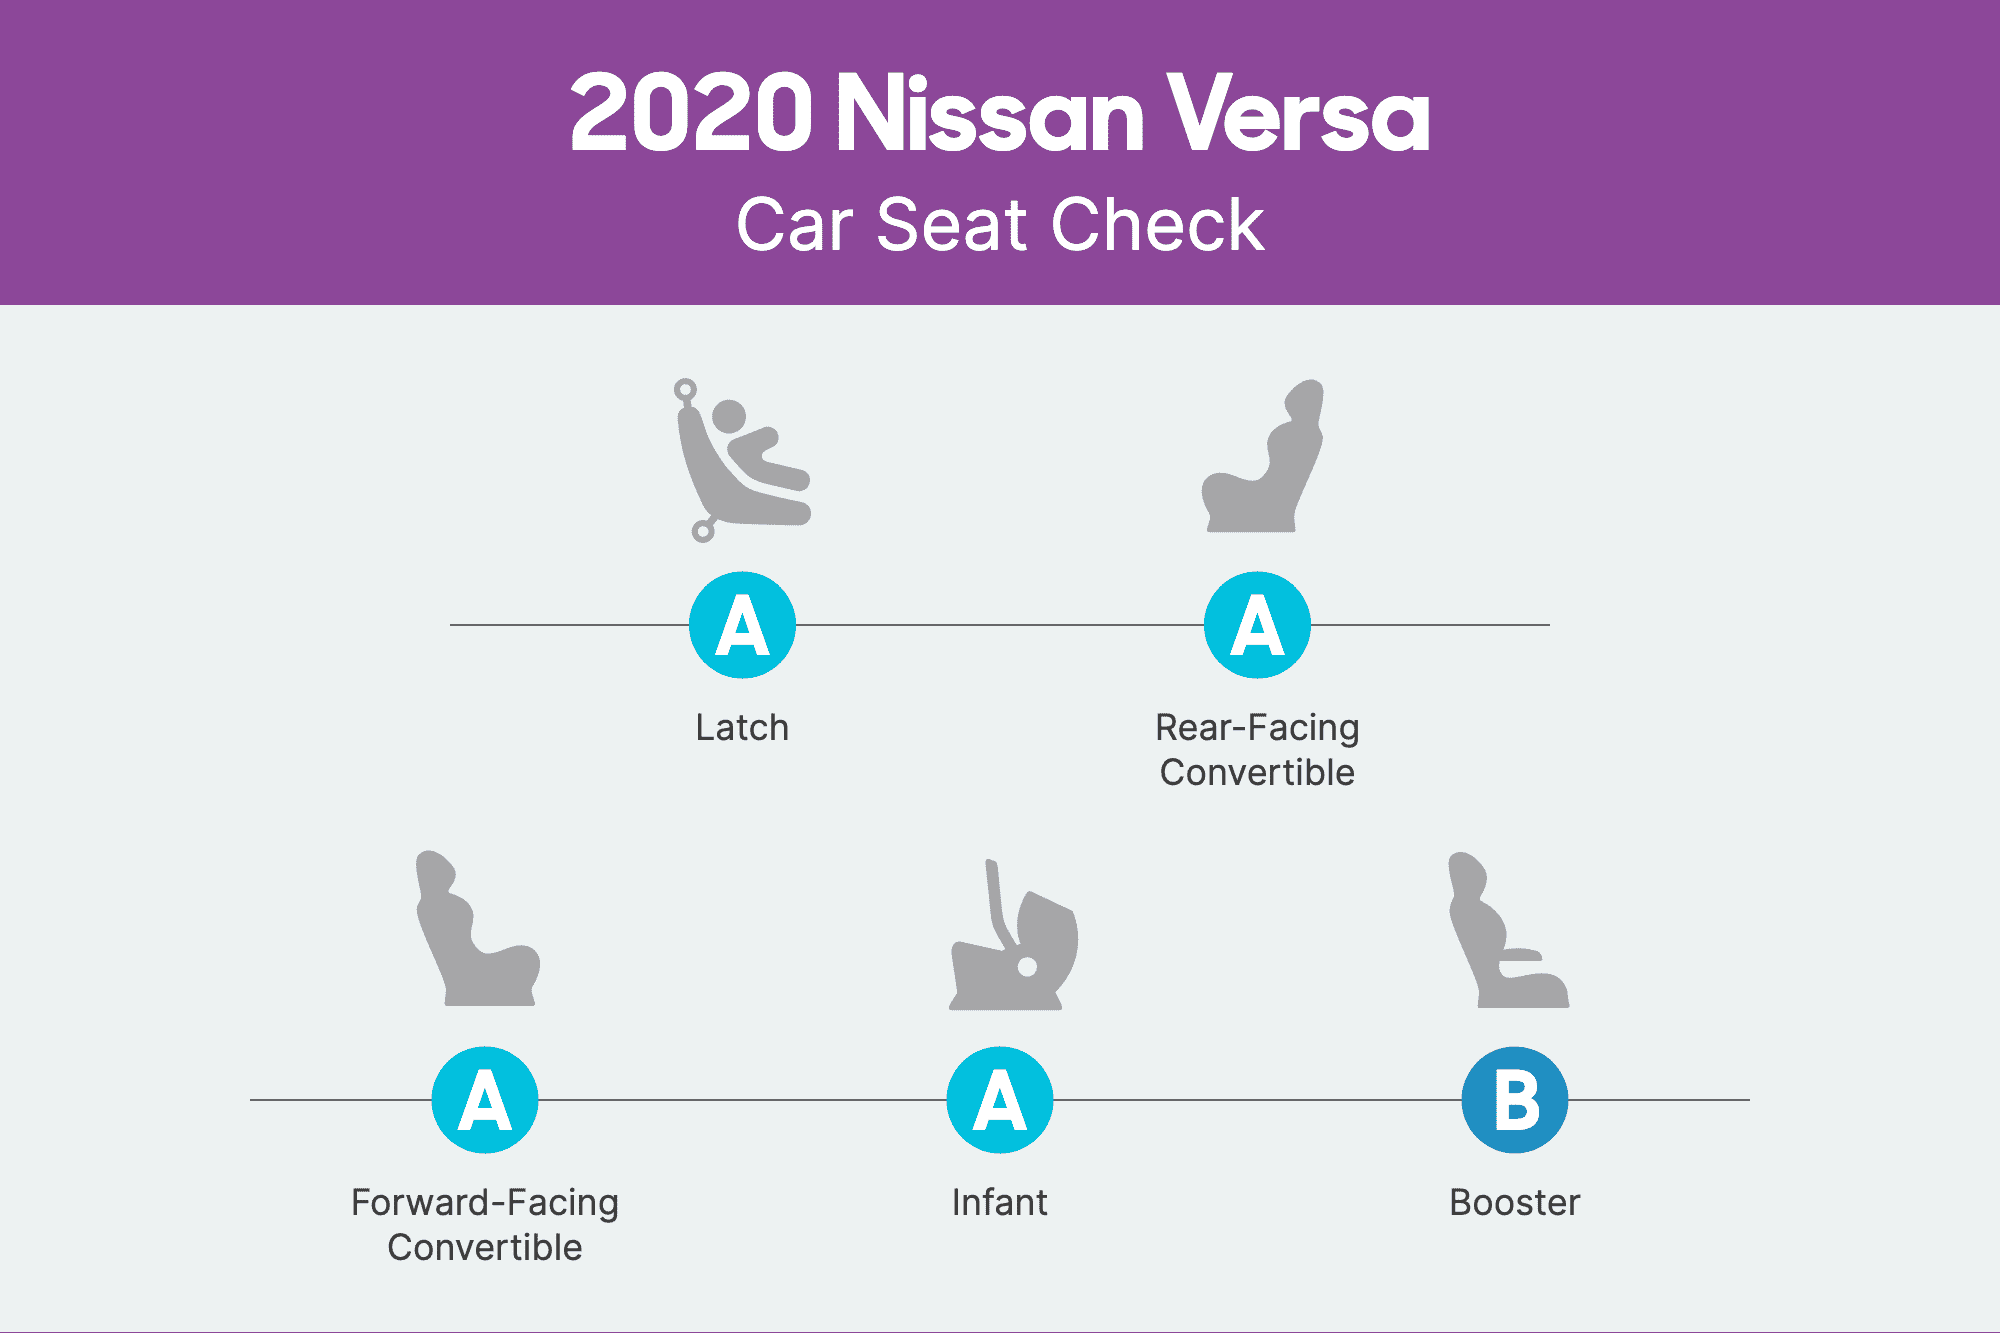 How Do Car Seats Fit in a 2020 Nissan Versa?